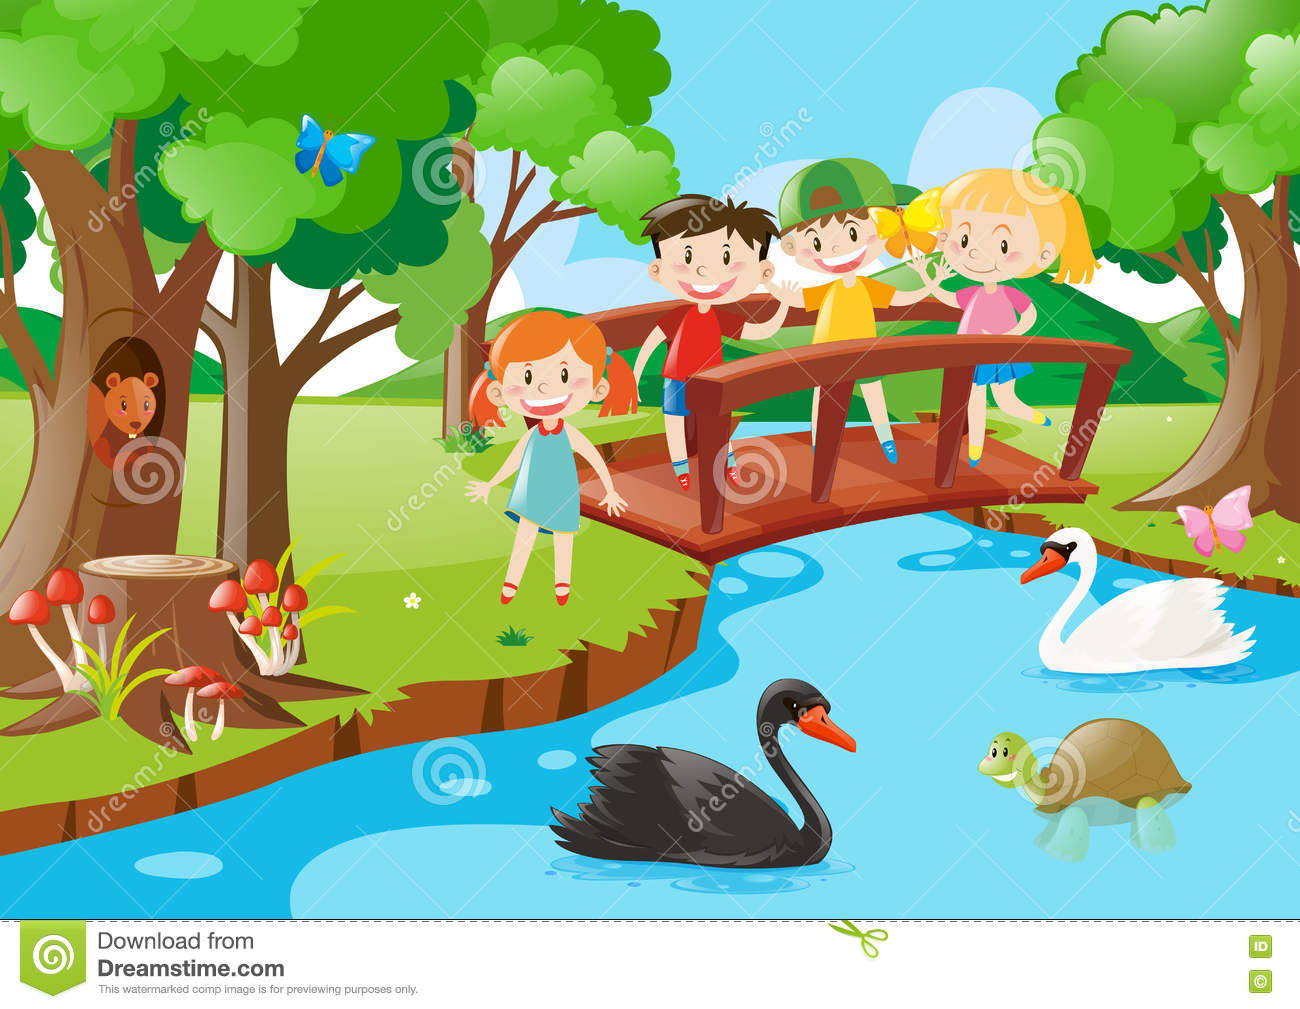 Kids On The Bridge And Animals In The Park Stock Vector.